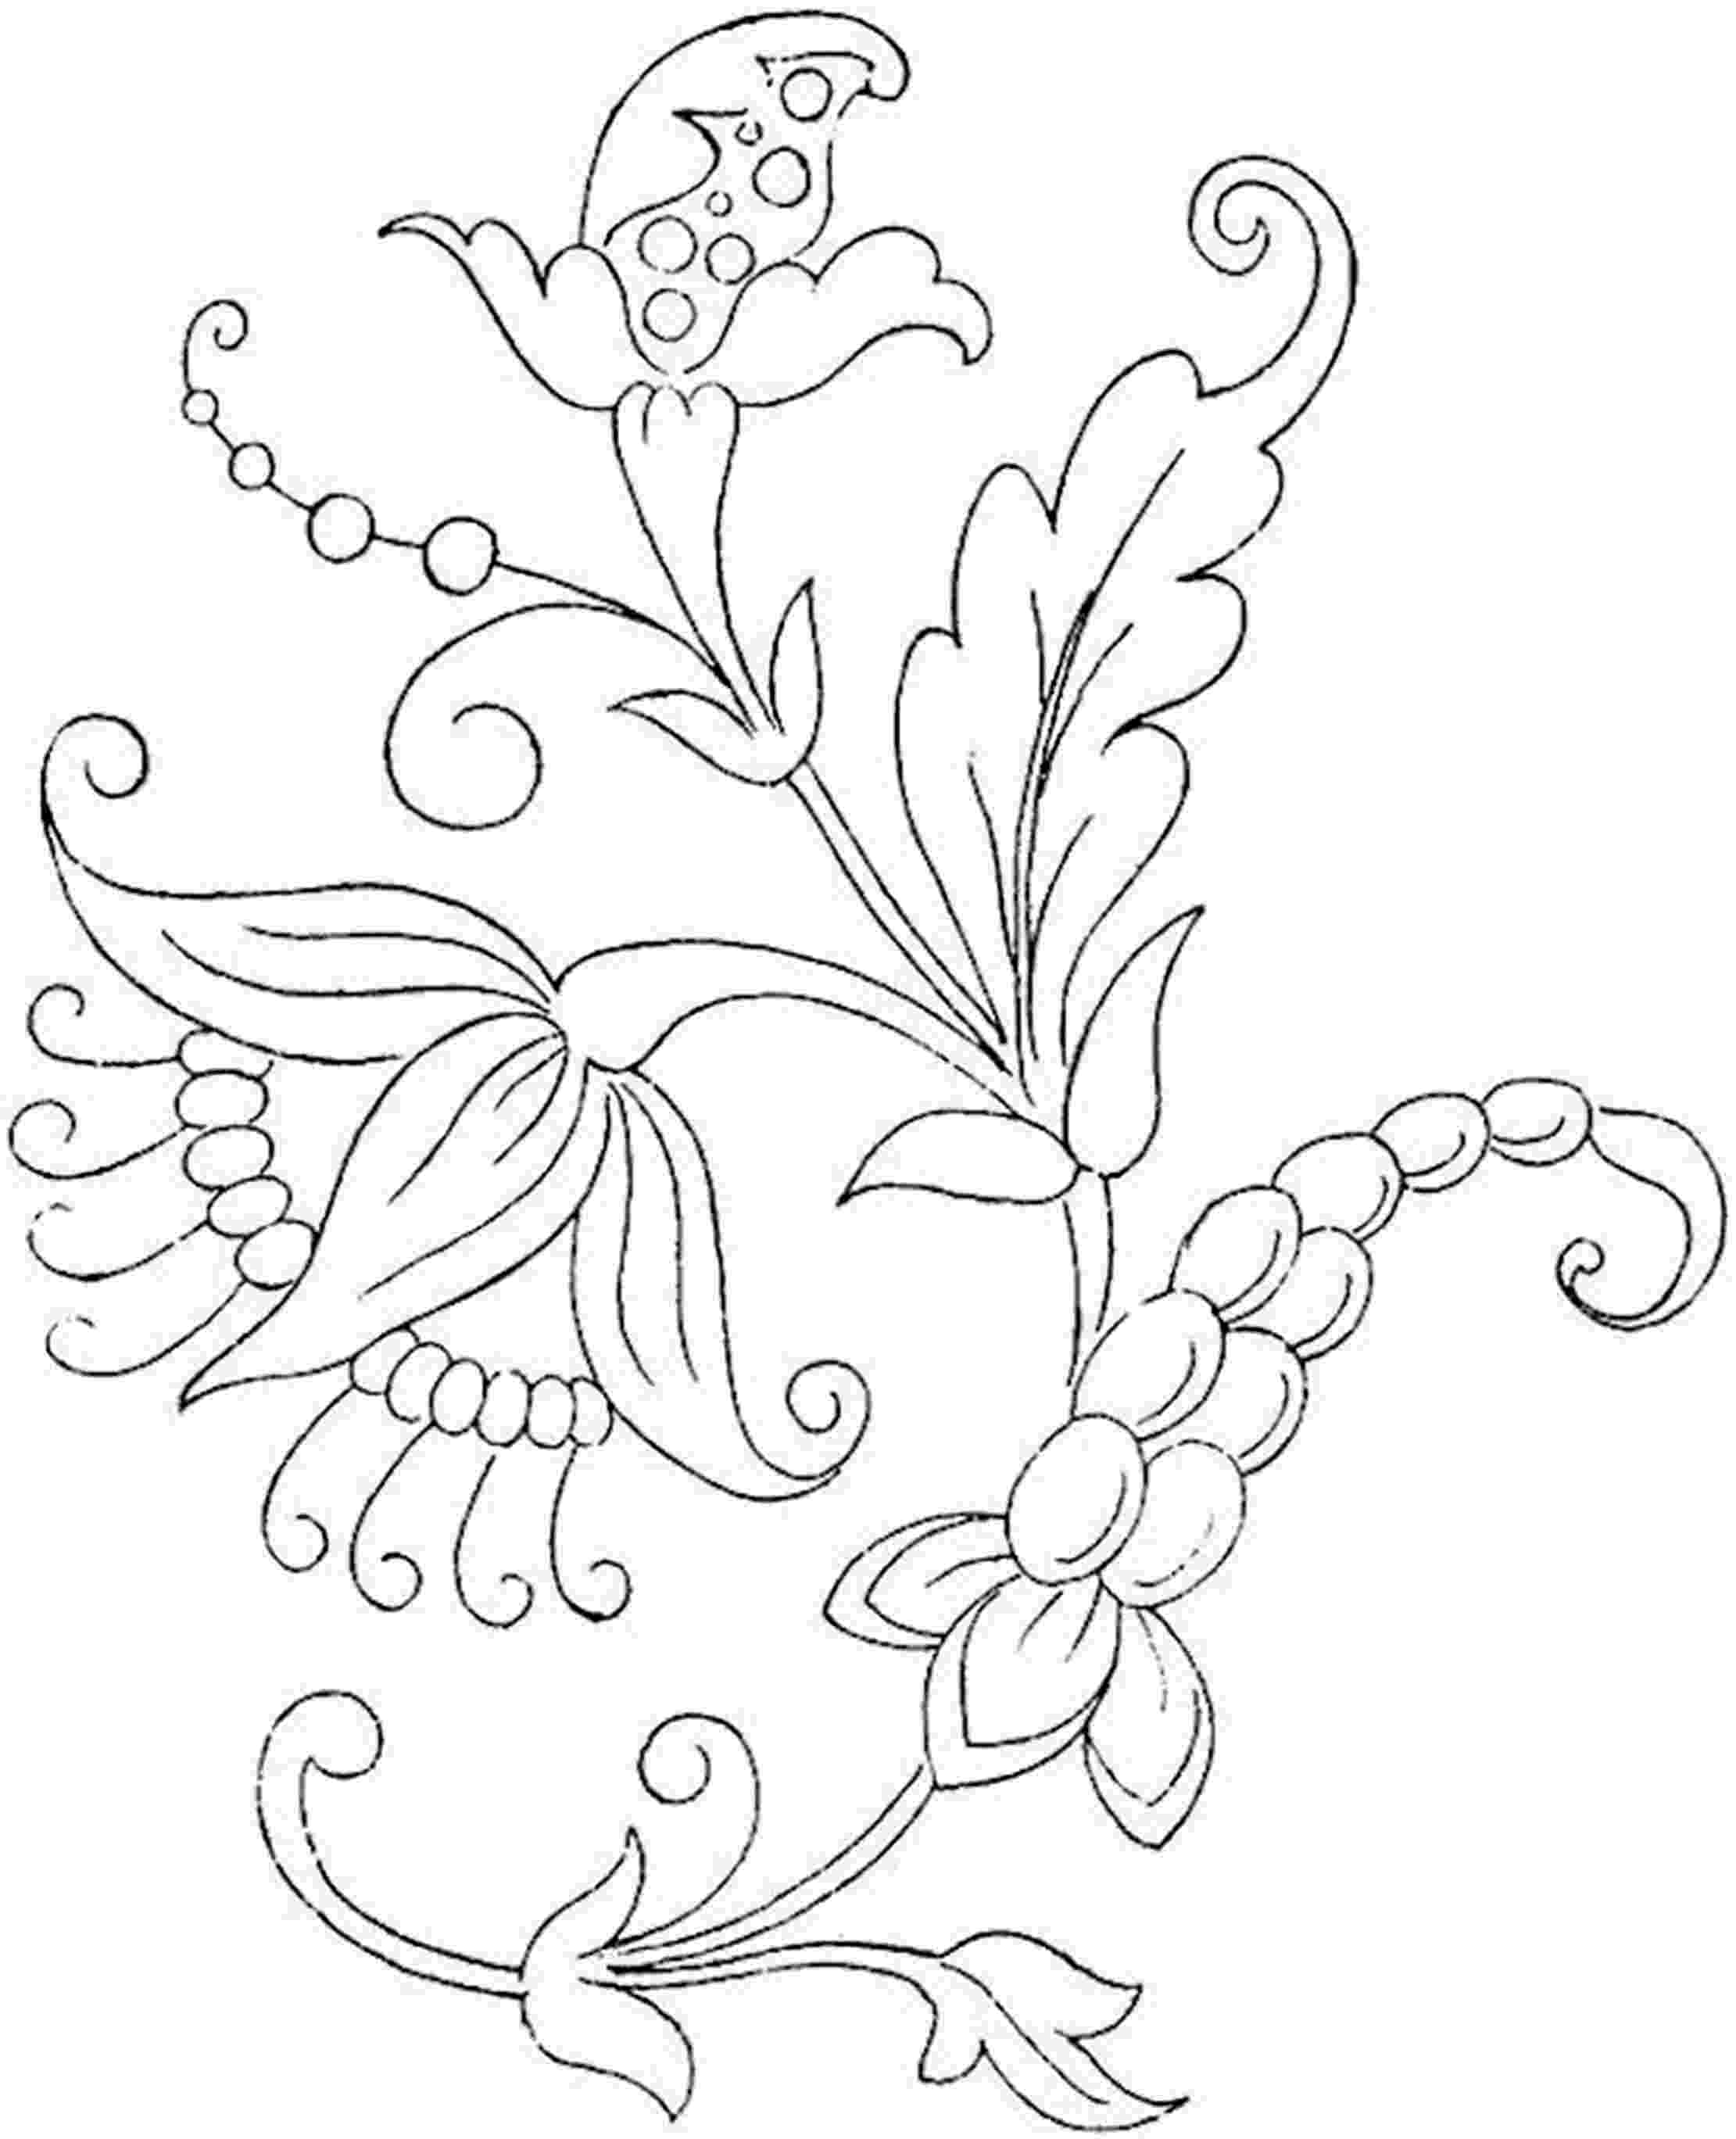 flower printable pictures free printable flower coloring pages for kids best flower printable pictures 1 2